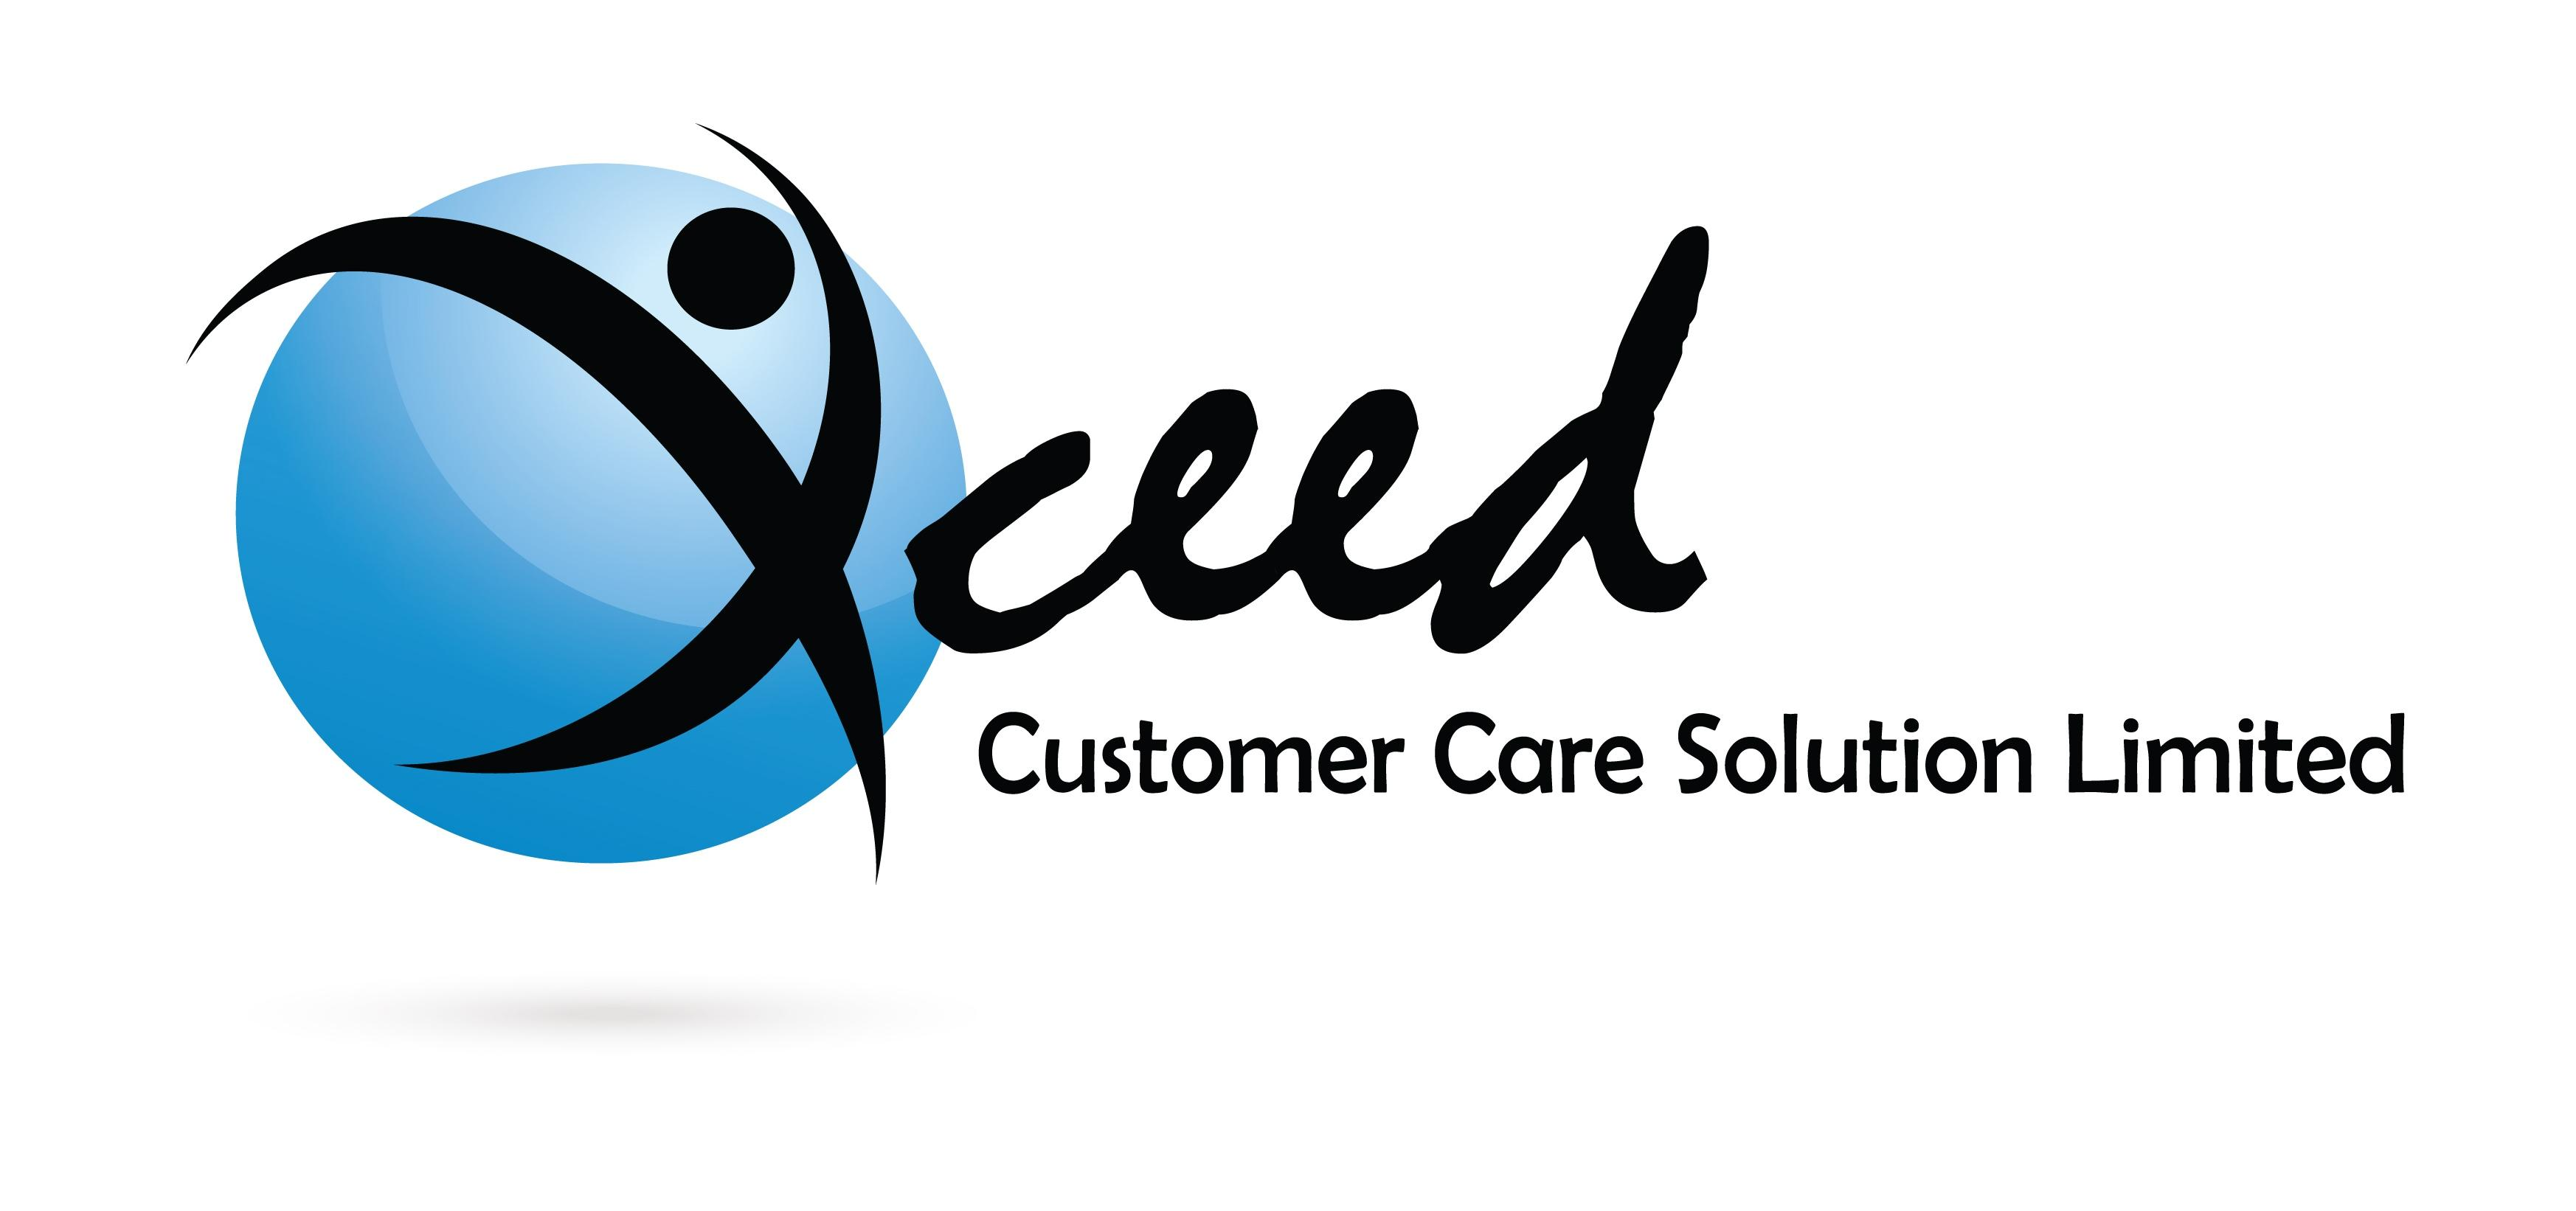 XCEED Customer Care Solutions Limited